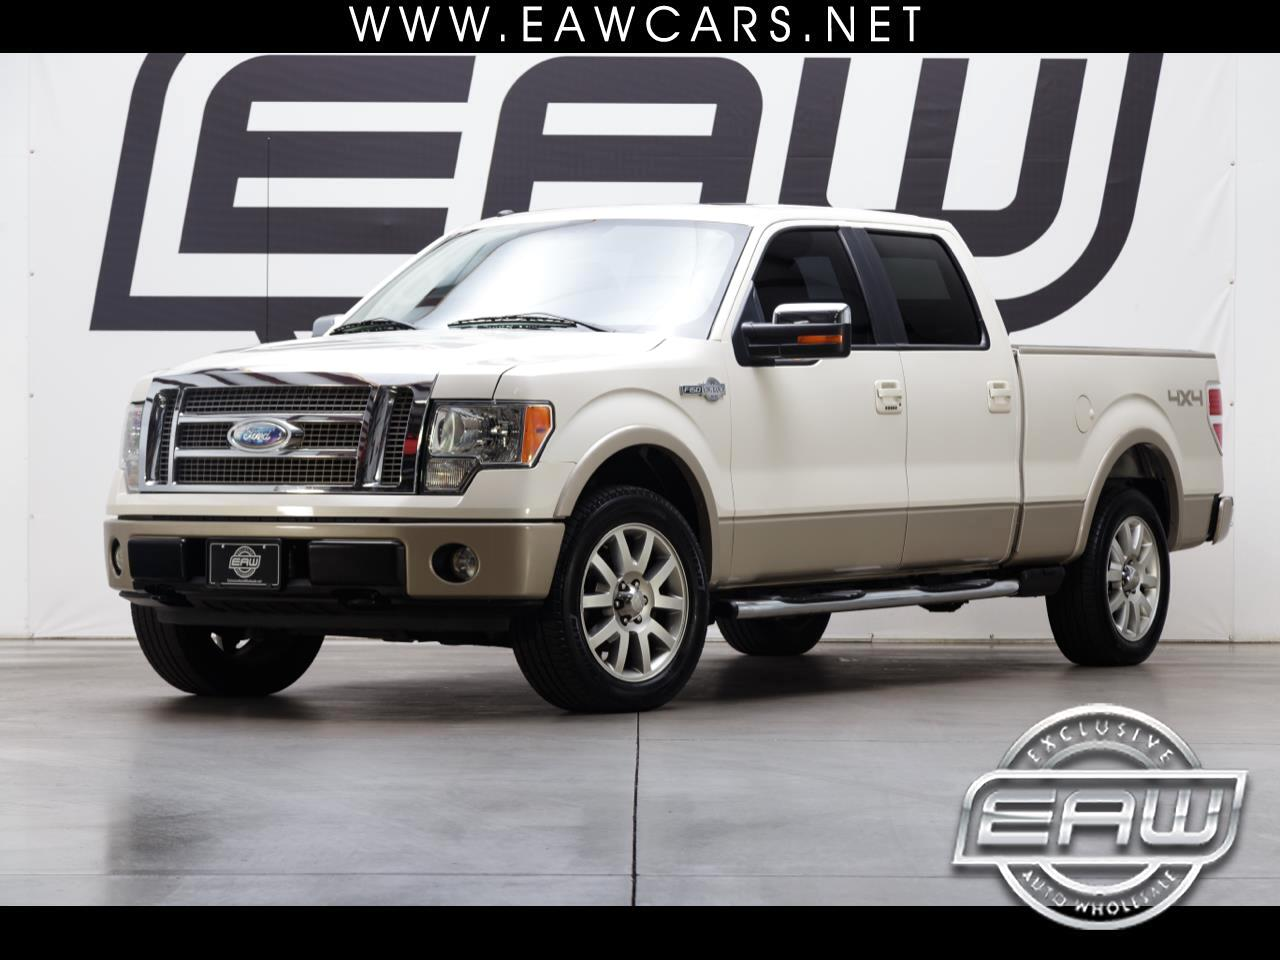 2009 Ford F-150 KING RANCH SUPERCREW 4WD LONG BED